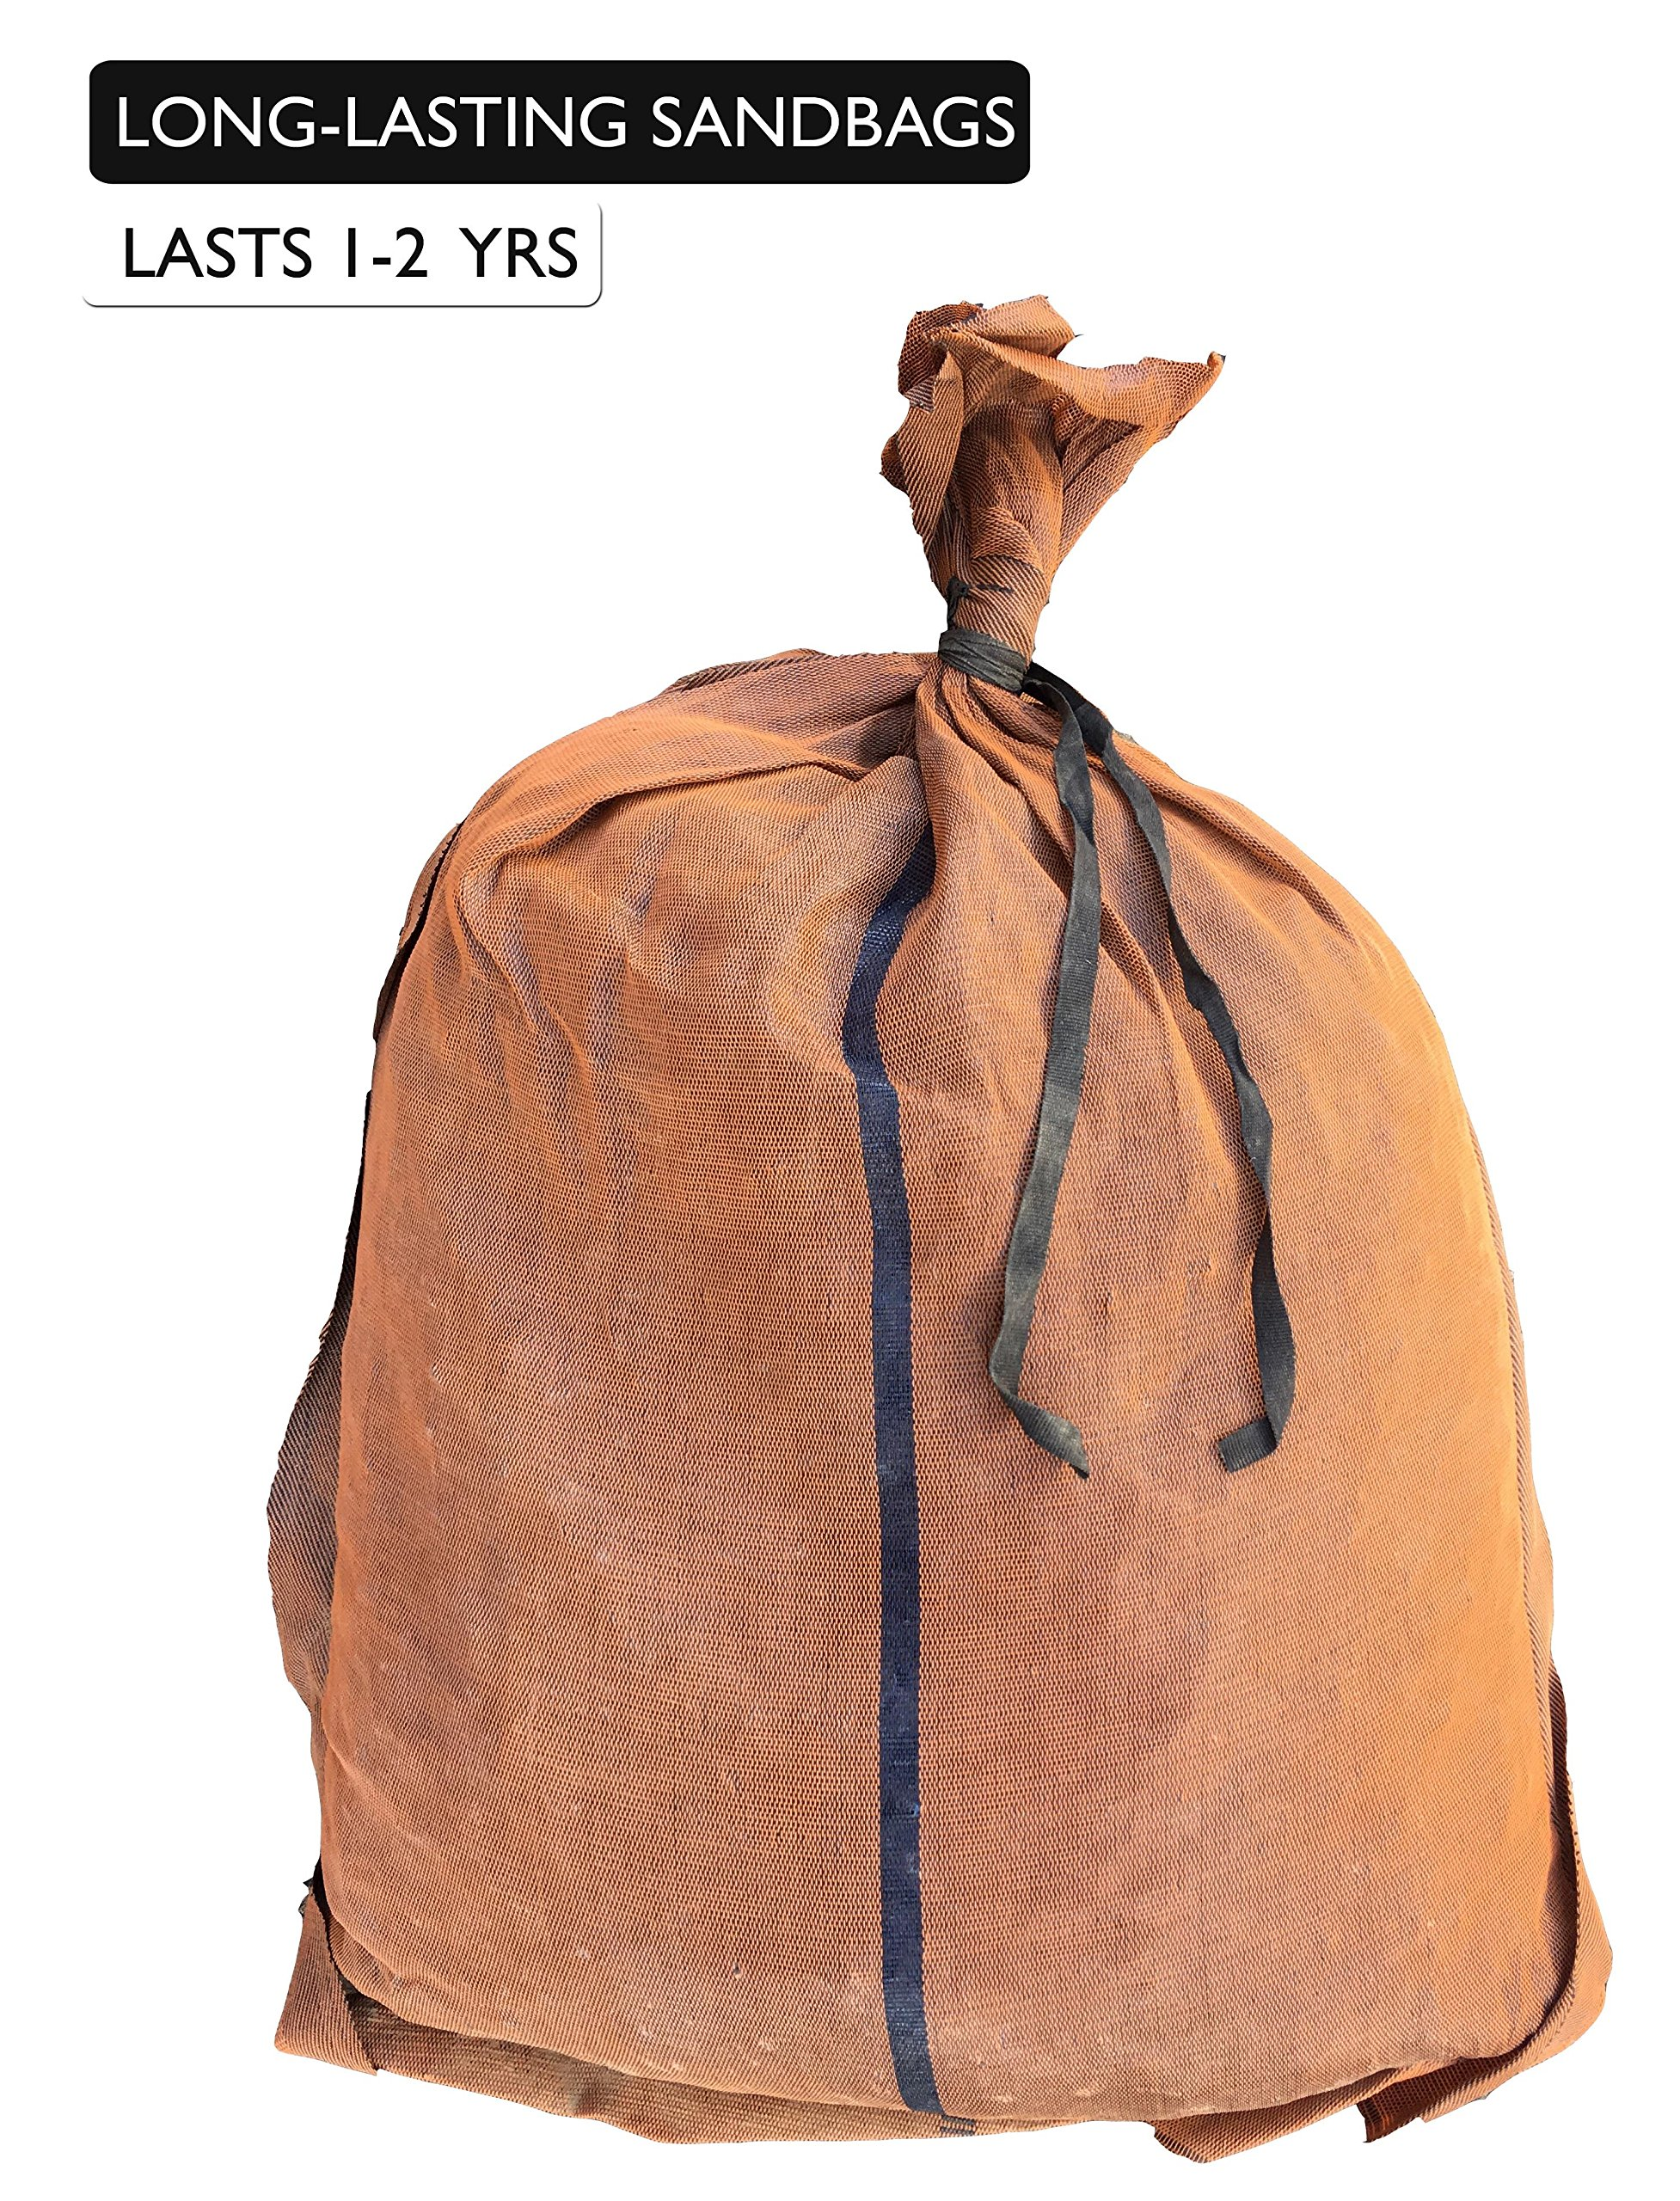 Sandbaggy - 17'' x 27'' Long-Lasting Sandbags - Brown Color - Lasts 1-2 Yrs - Monofilament (Pack of 100) by Sandbaggy (Image #3)